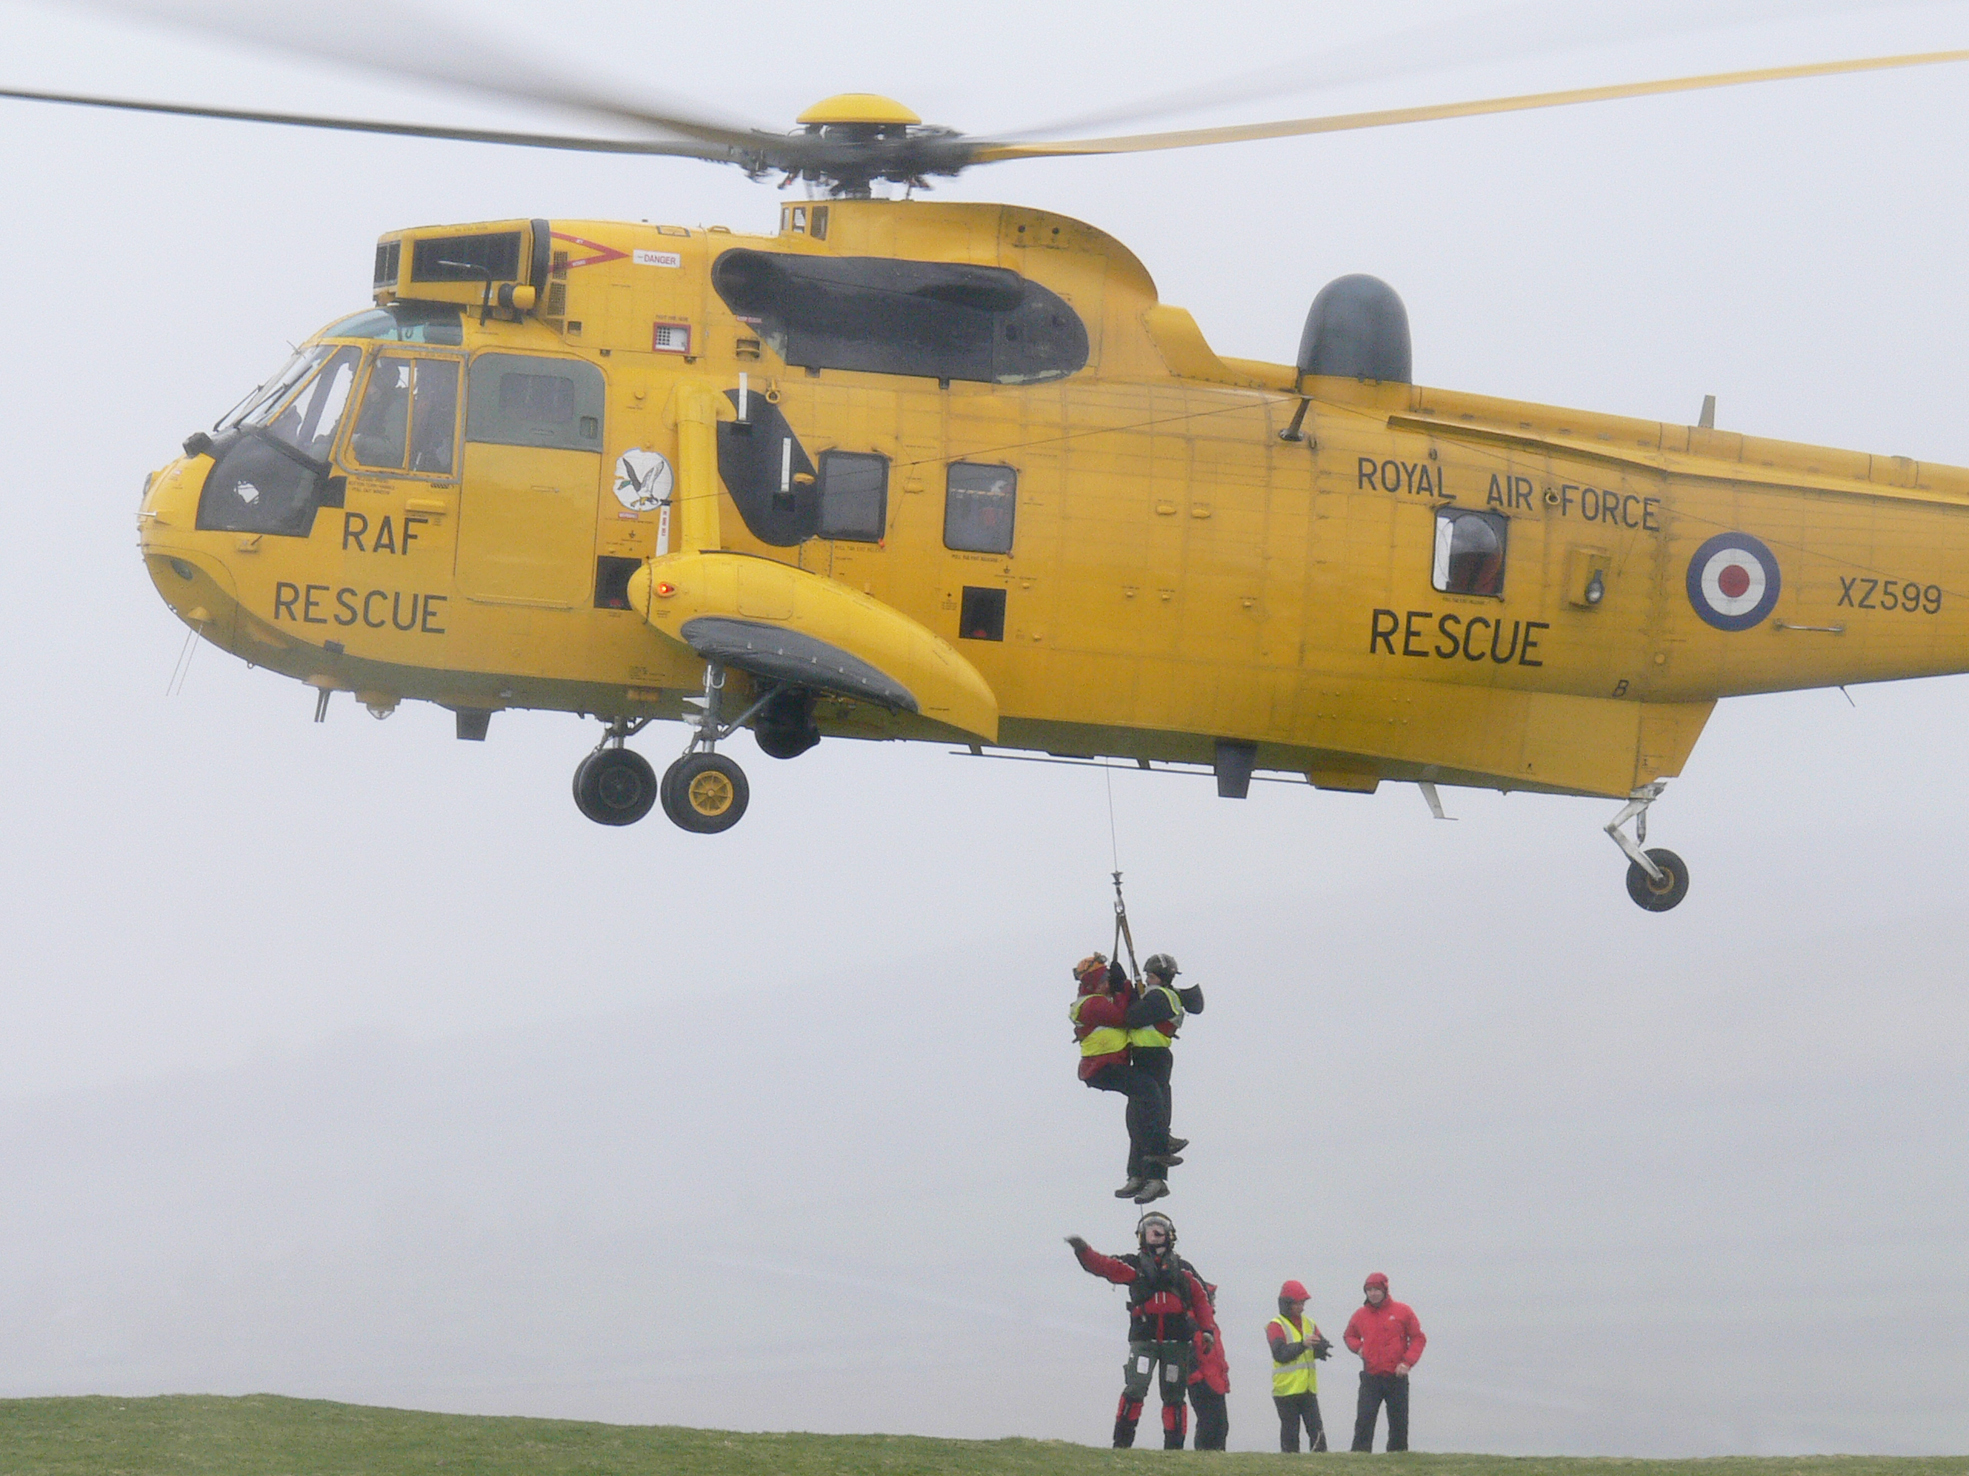 A rescue operation with the assistance of an RAF helicopter